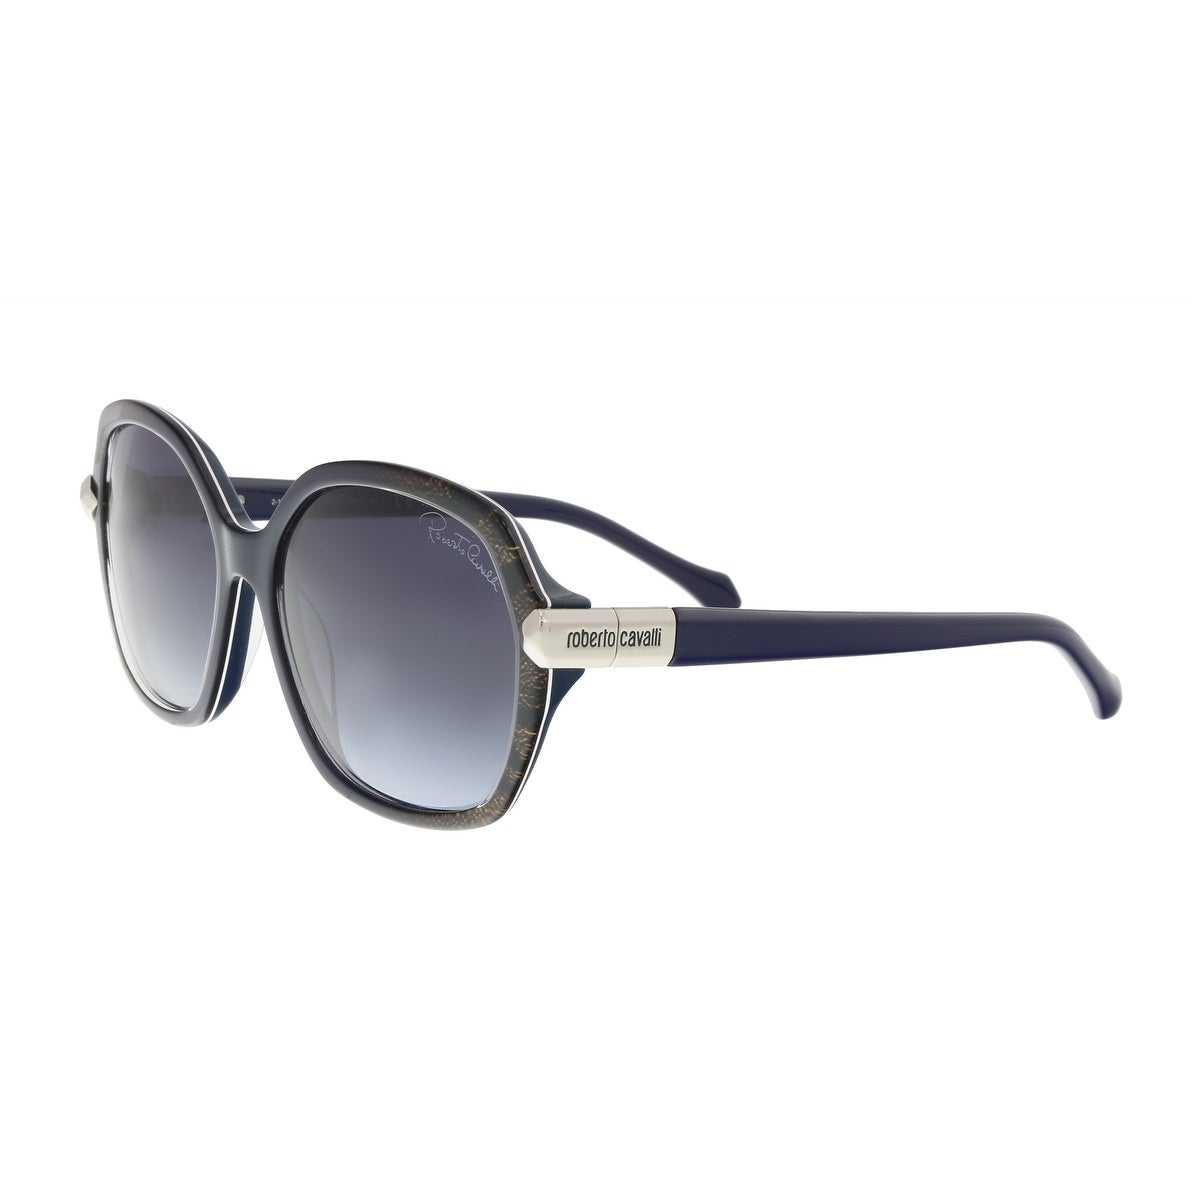 dea70b2a0af5 Roberto Cavalli Sunglasses | Shop our Best Clothing & Shoes Deals Online at  Overstock